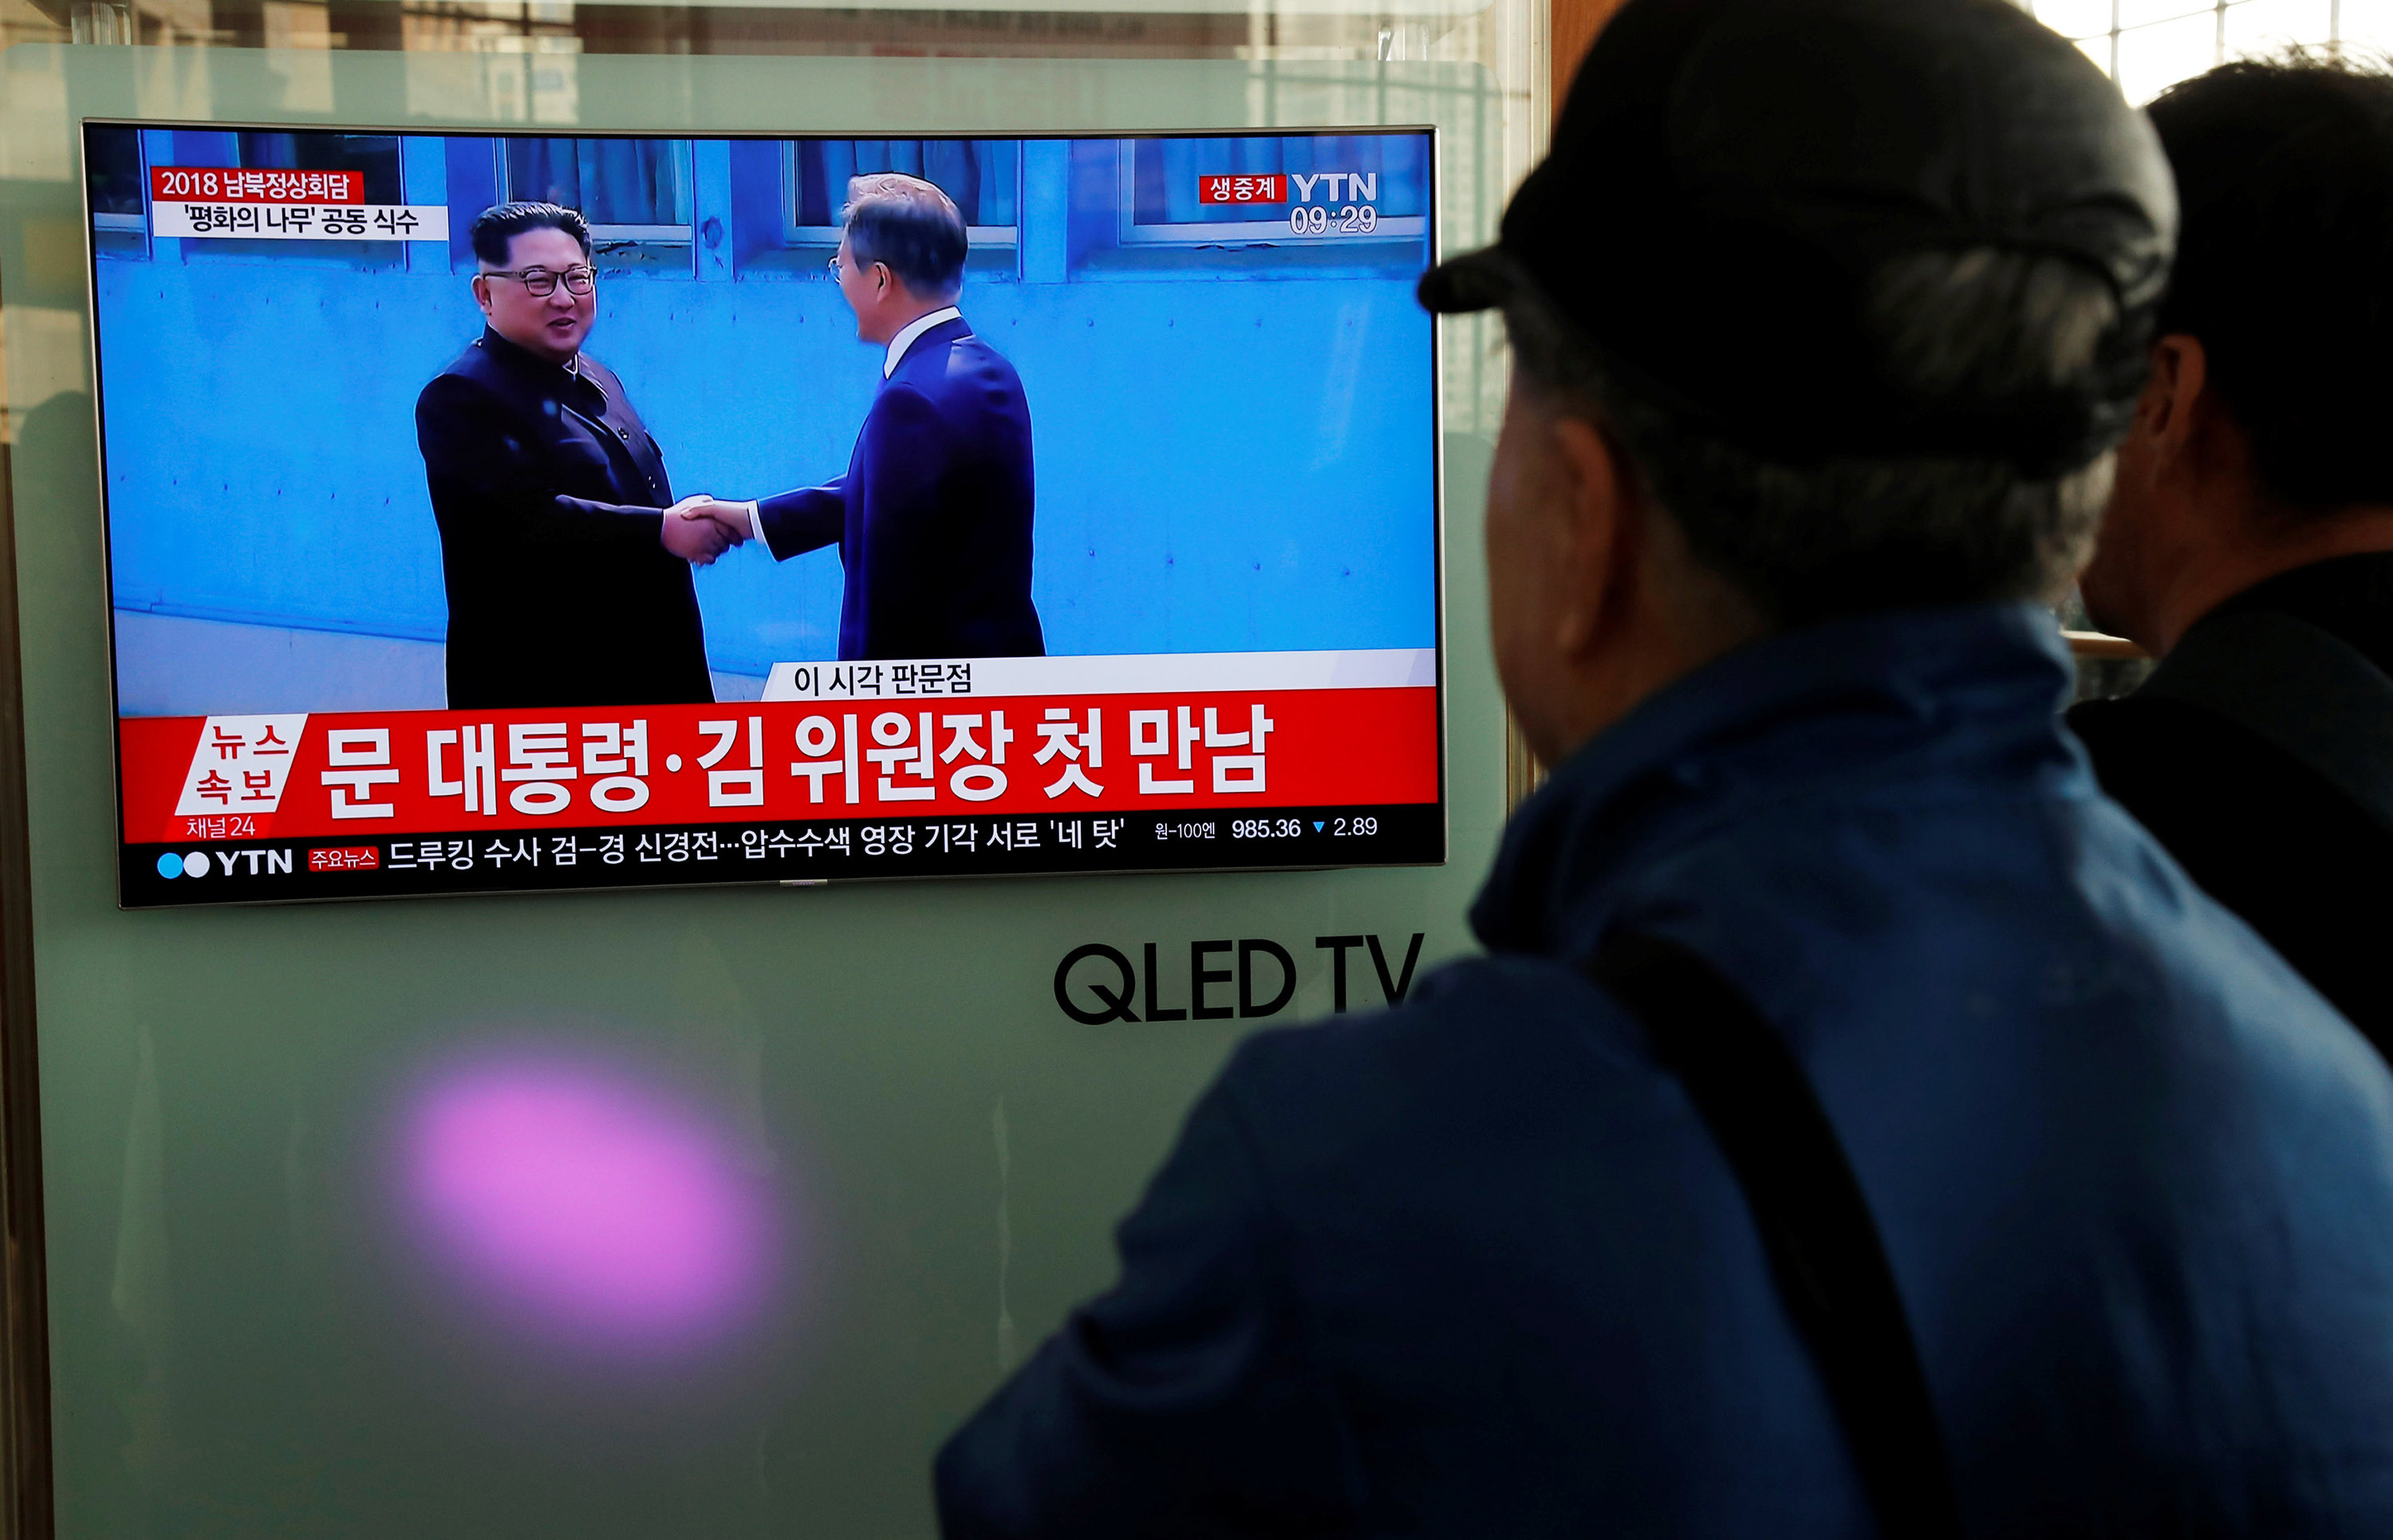 """the war and peace negotiations between north and south korea Hace 1 día """"holding back the """"war games"""" during the negotiations was my request because  so much"""" to north korea,  training between south korea and."""